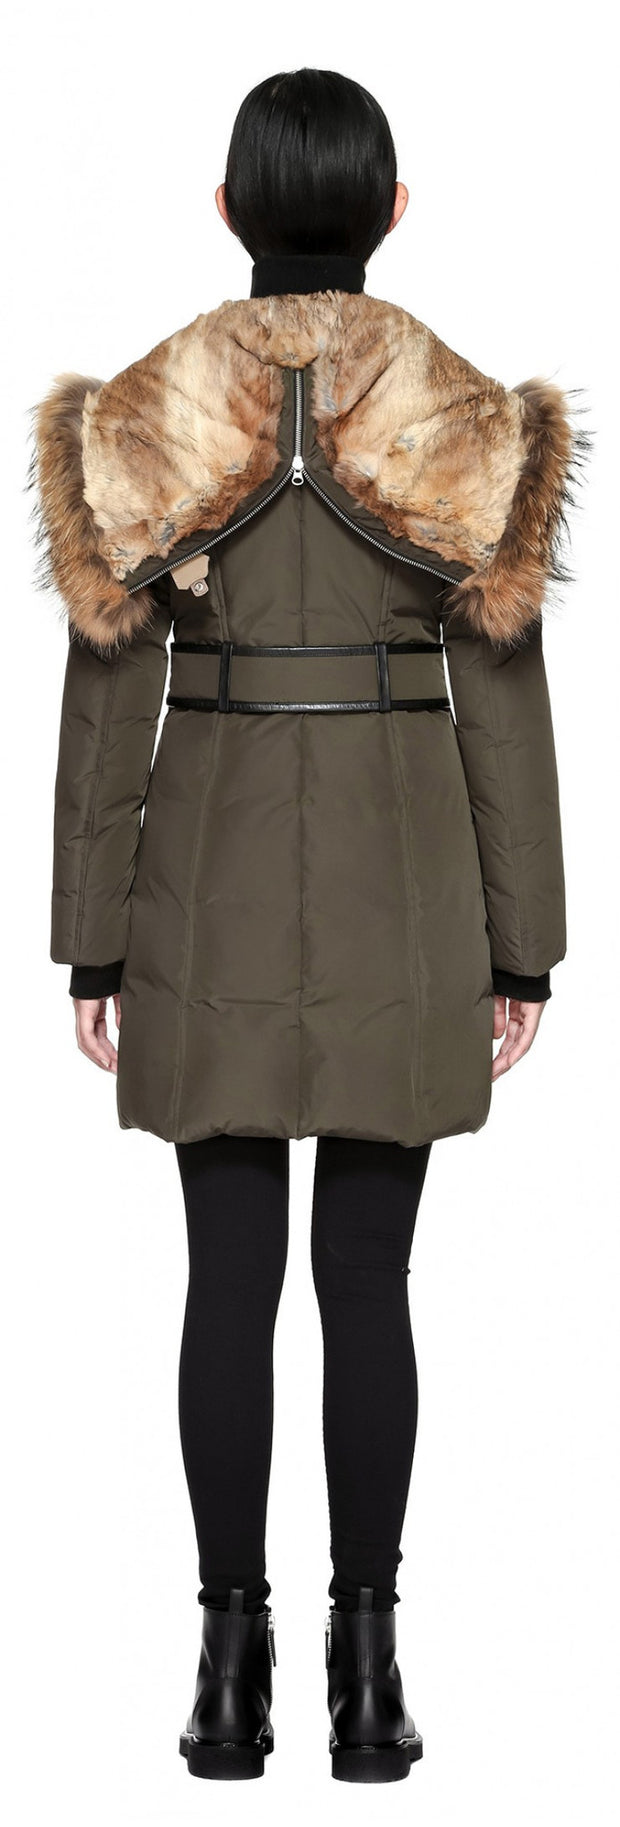 Mackage Mackage- Trish Coat Army at Blond Genius - 2